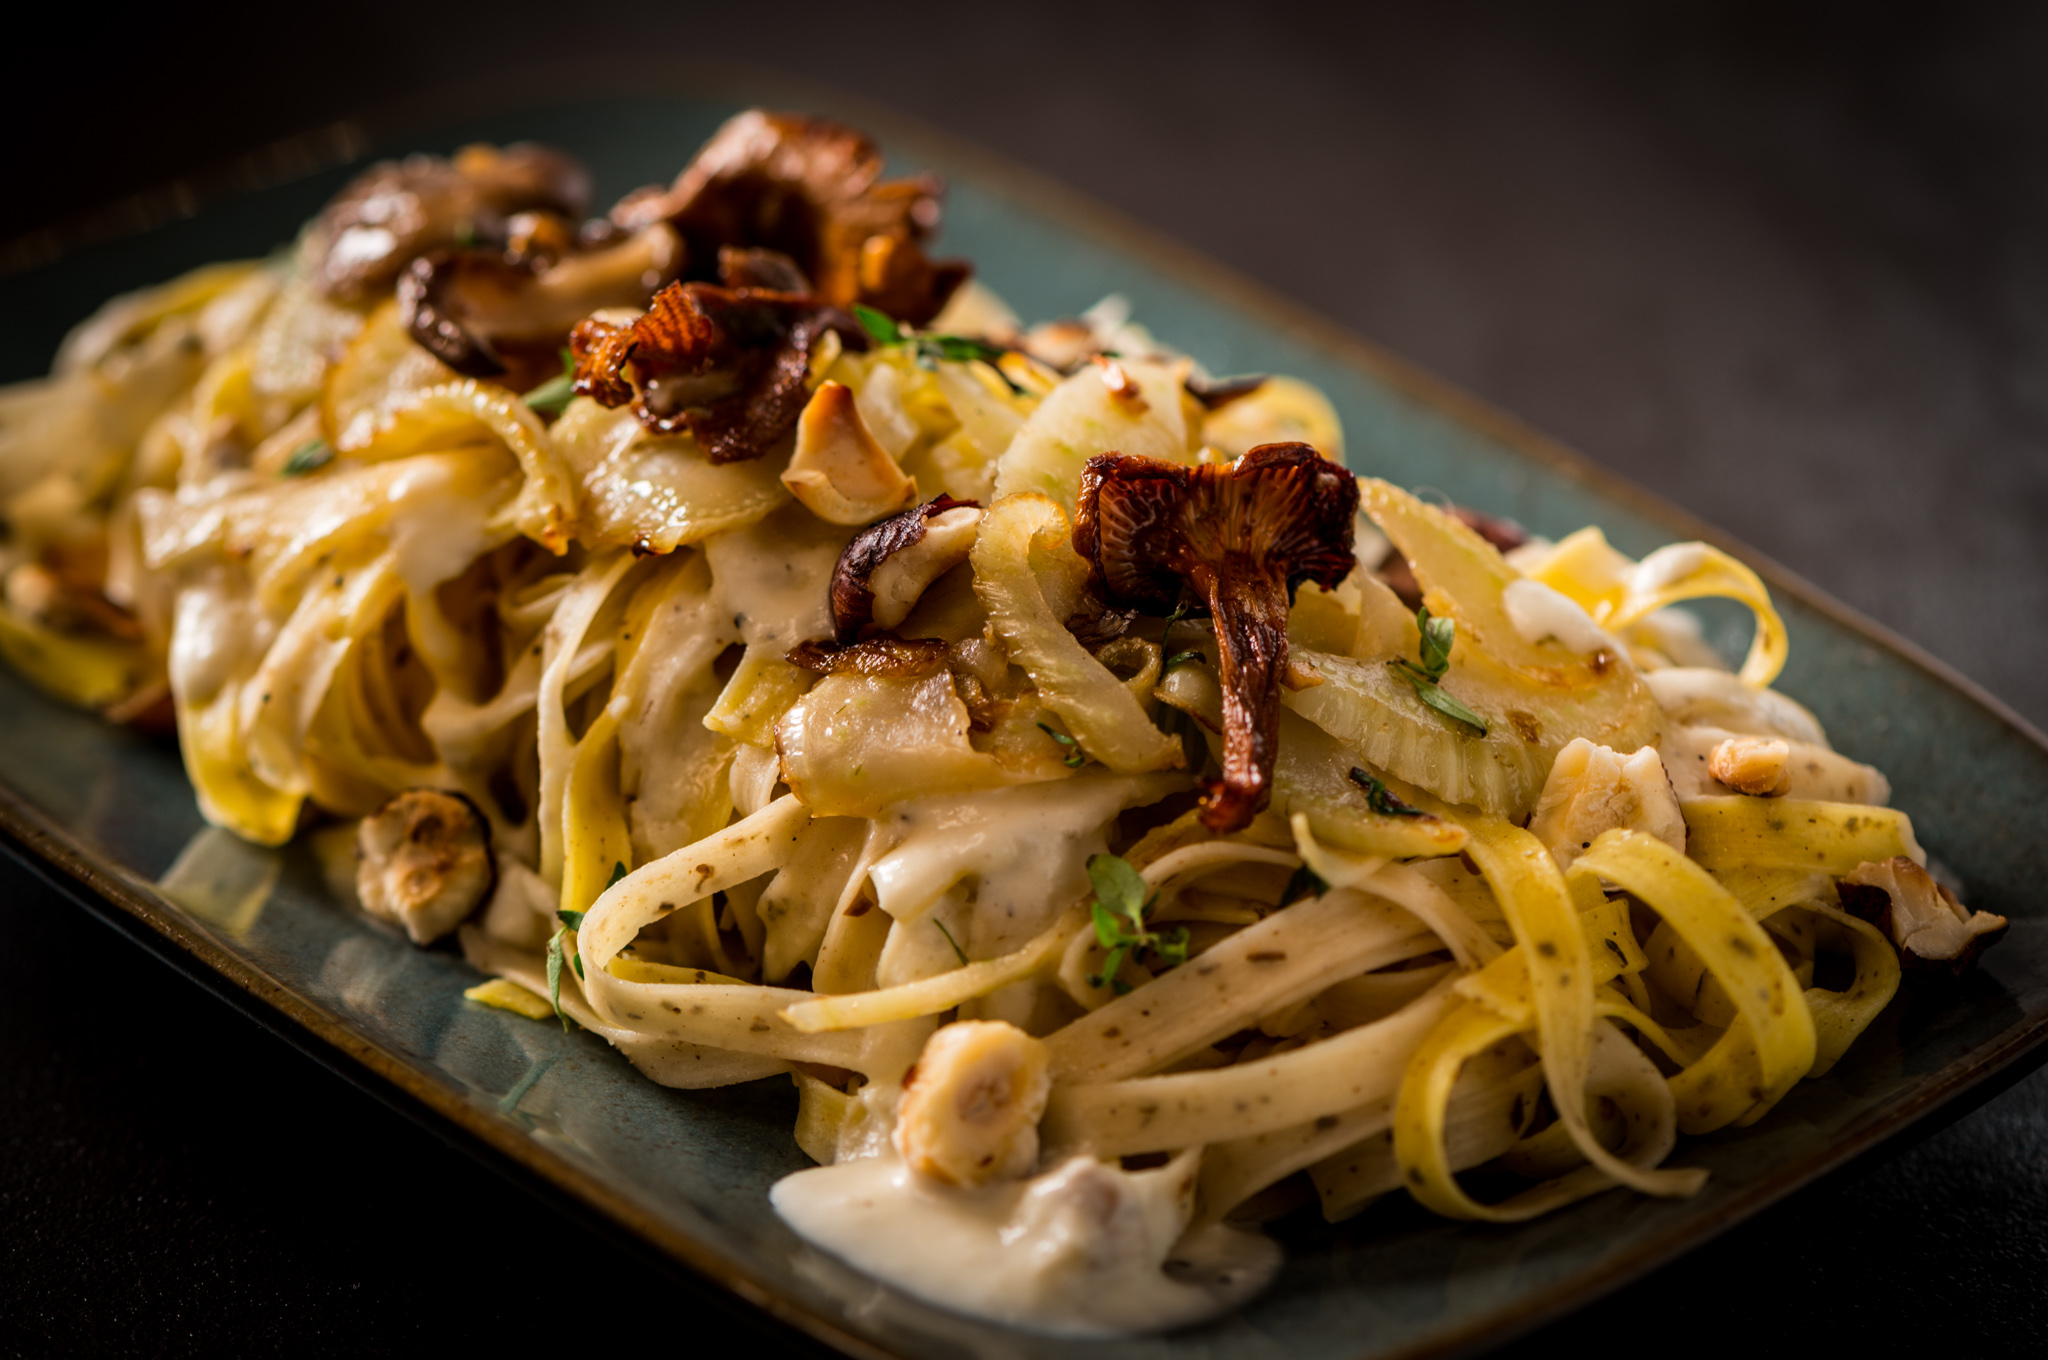 In the spirit of Piedmont, Italy  : Sage fettuccine, toasted hazelnuts, sautéed mushrooms and fennel, fresh thyme, Parmigiano-black pepper crema : Pair with Nebbiolo, Barbera or Dolcetto